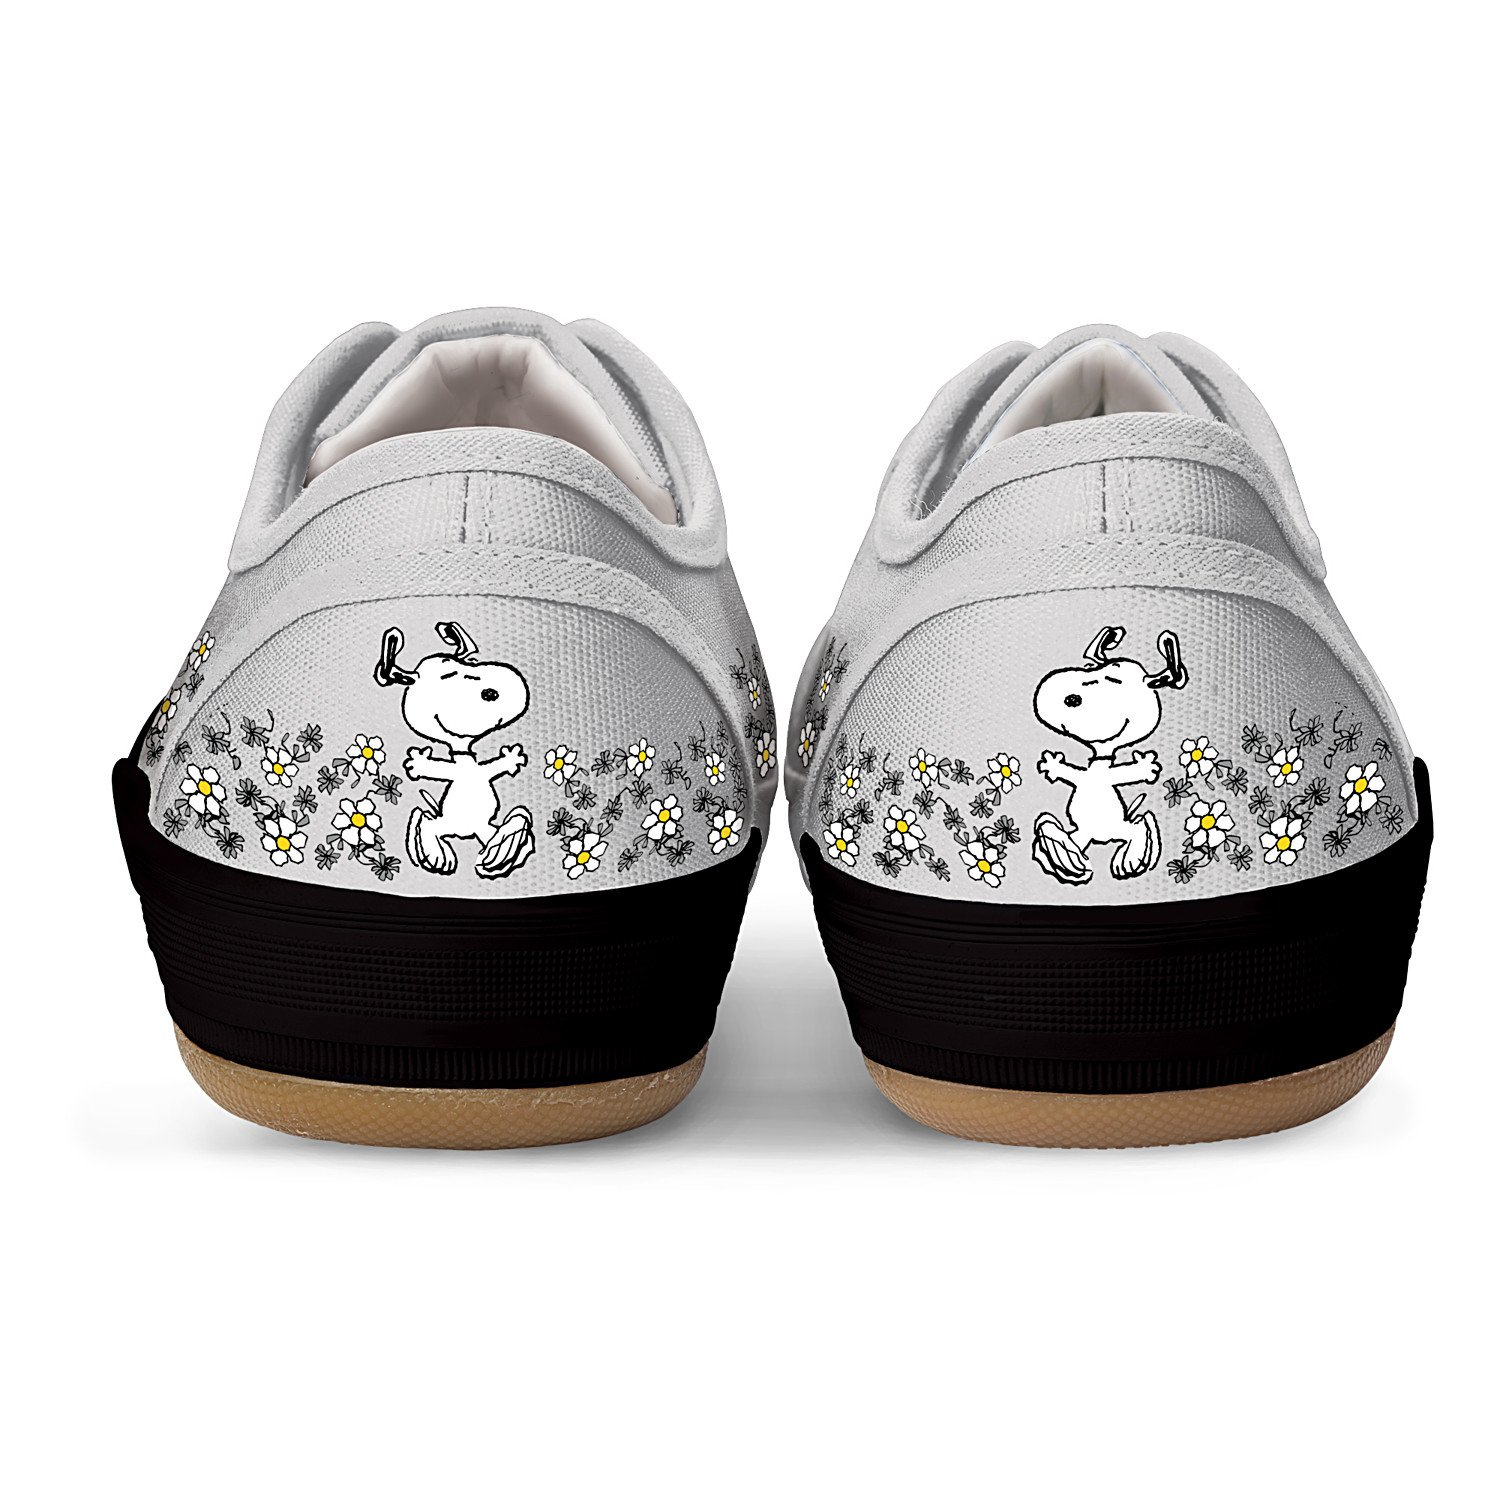 PEANUTS Happiness Is Friendship Women's Shoes With PEANUTS Characters Snoopy And Woodstock by The Bradford Exchange B00PYQU2L2 7 B(M) US Multicoloured